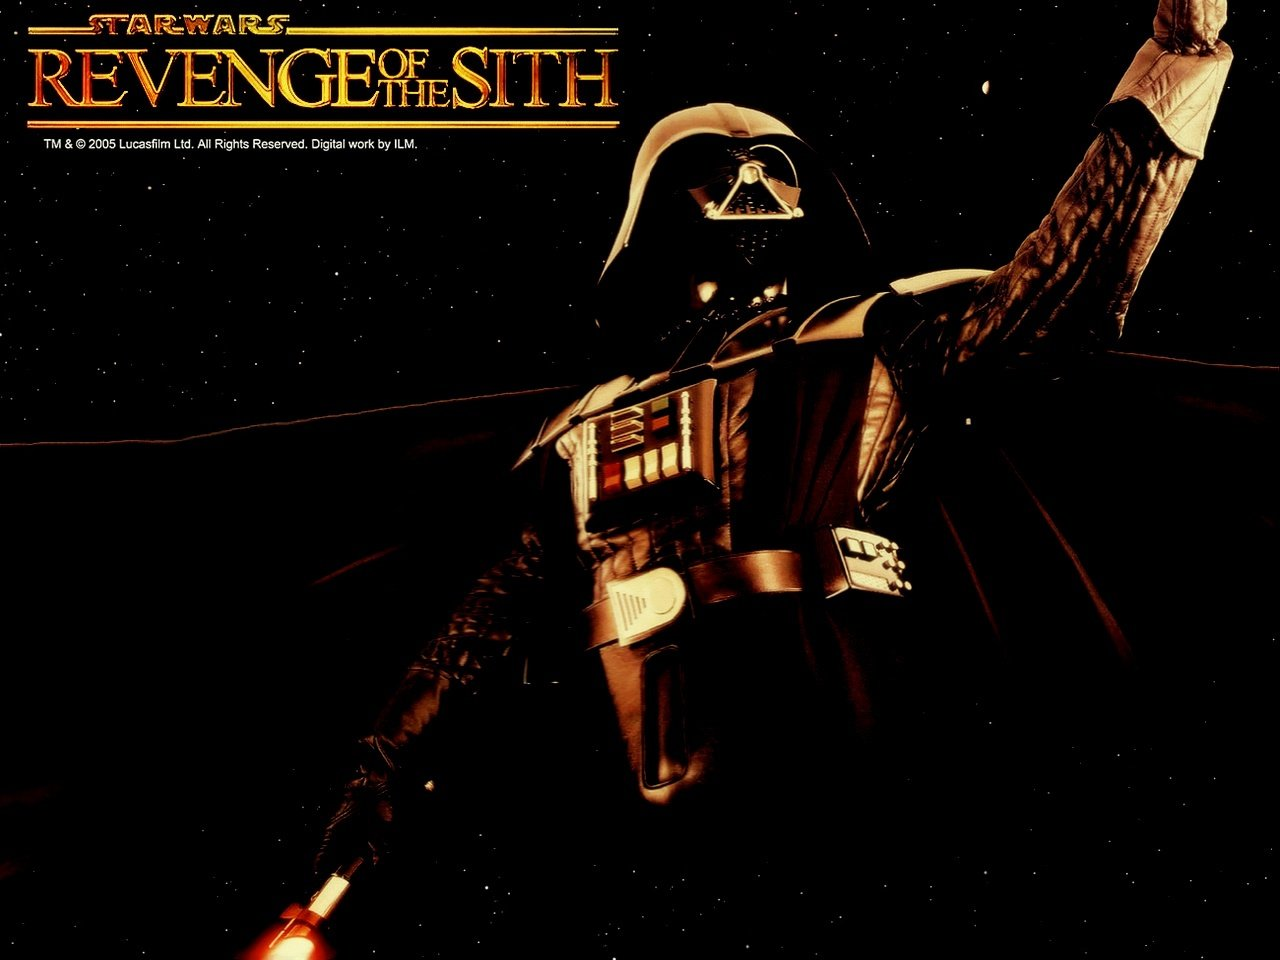 Free Download Star Wars Revenge Of The Sith Revenge Of The Sith Ep Iii Vader 1280x960 For Your Desktop Mobile Tablet Explore 48 Revenge Of The Sith Wallpaper Star